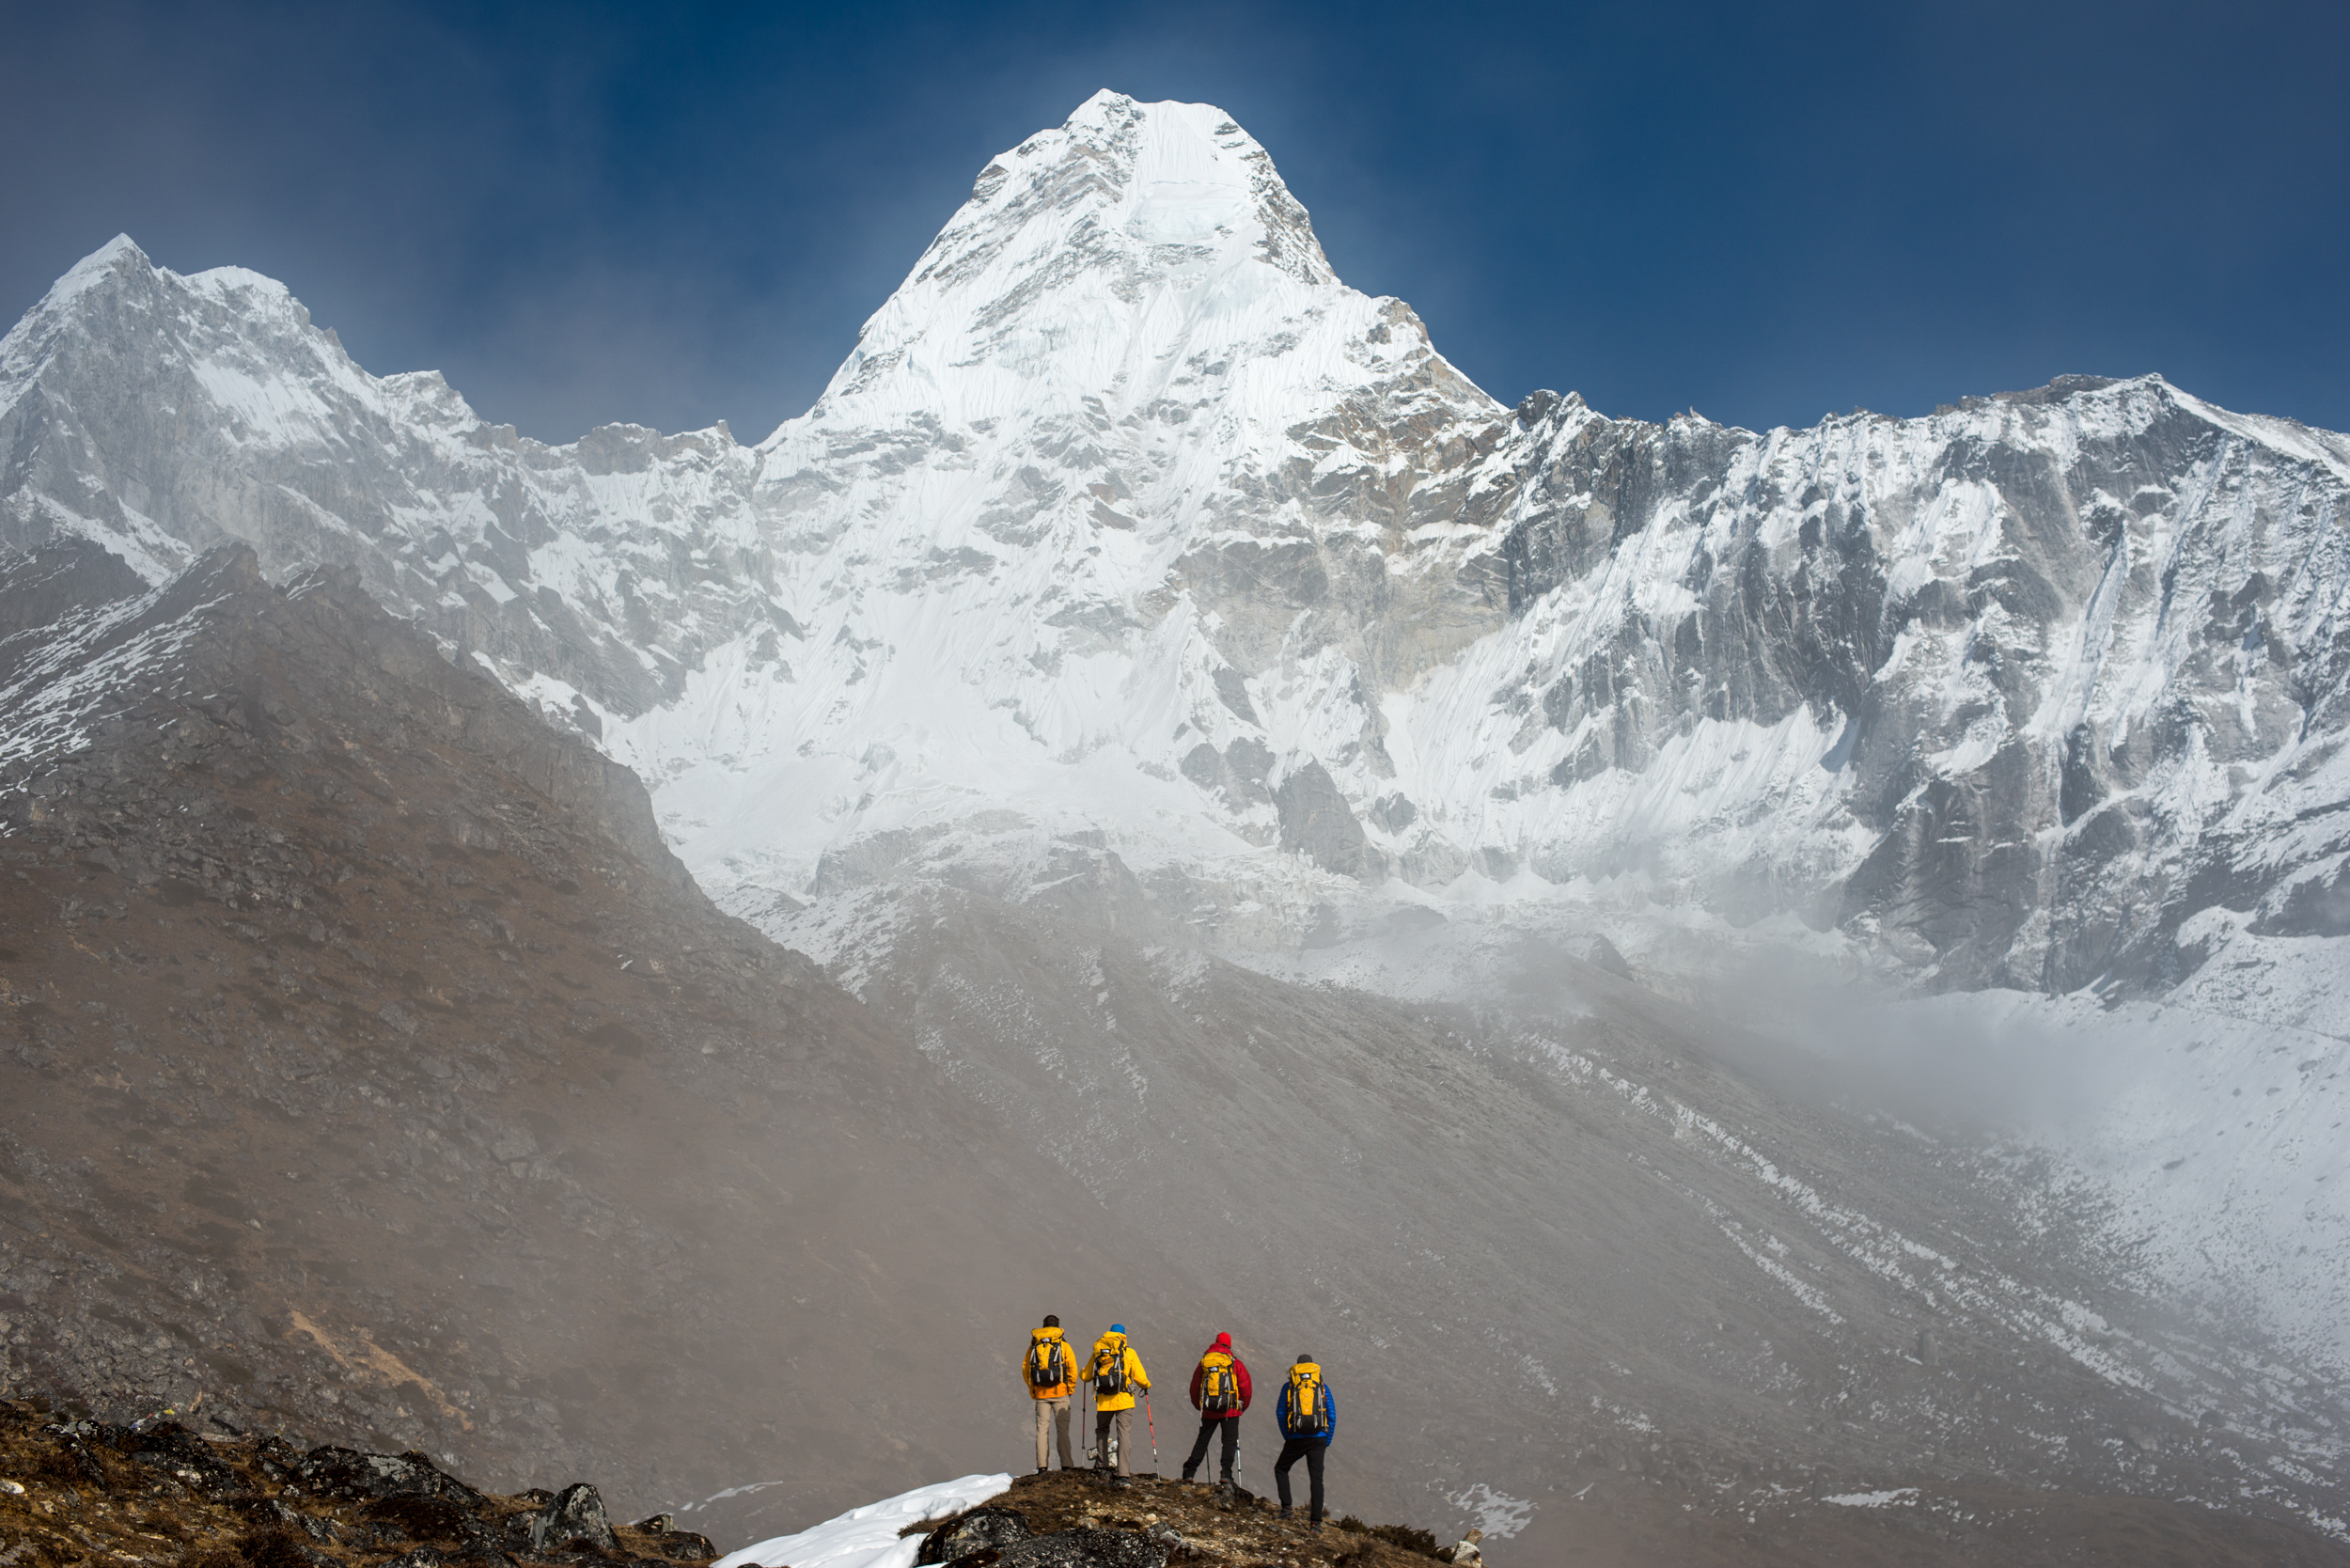 Ama Dablam North Face expedition shoot